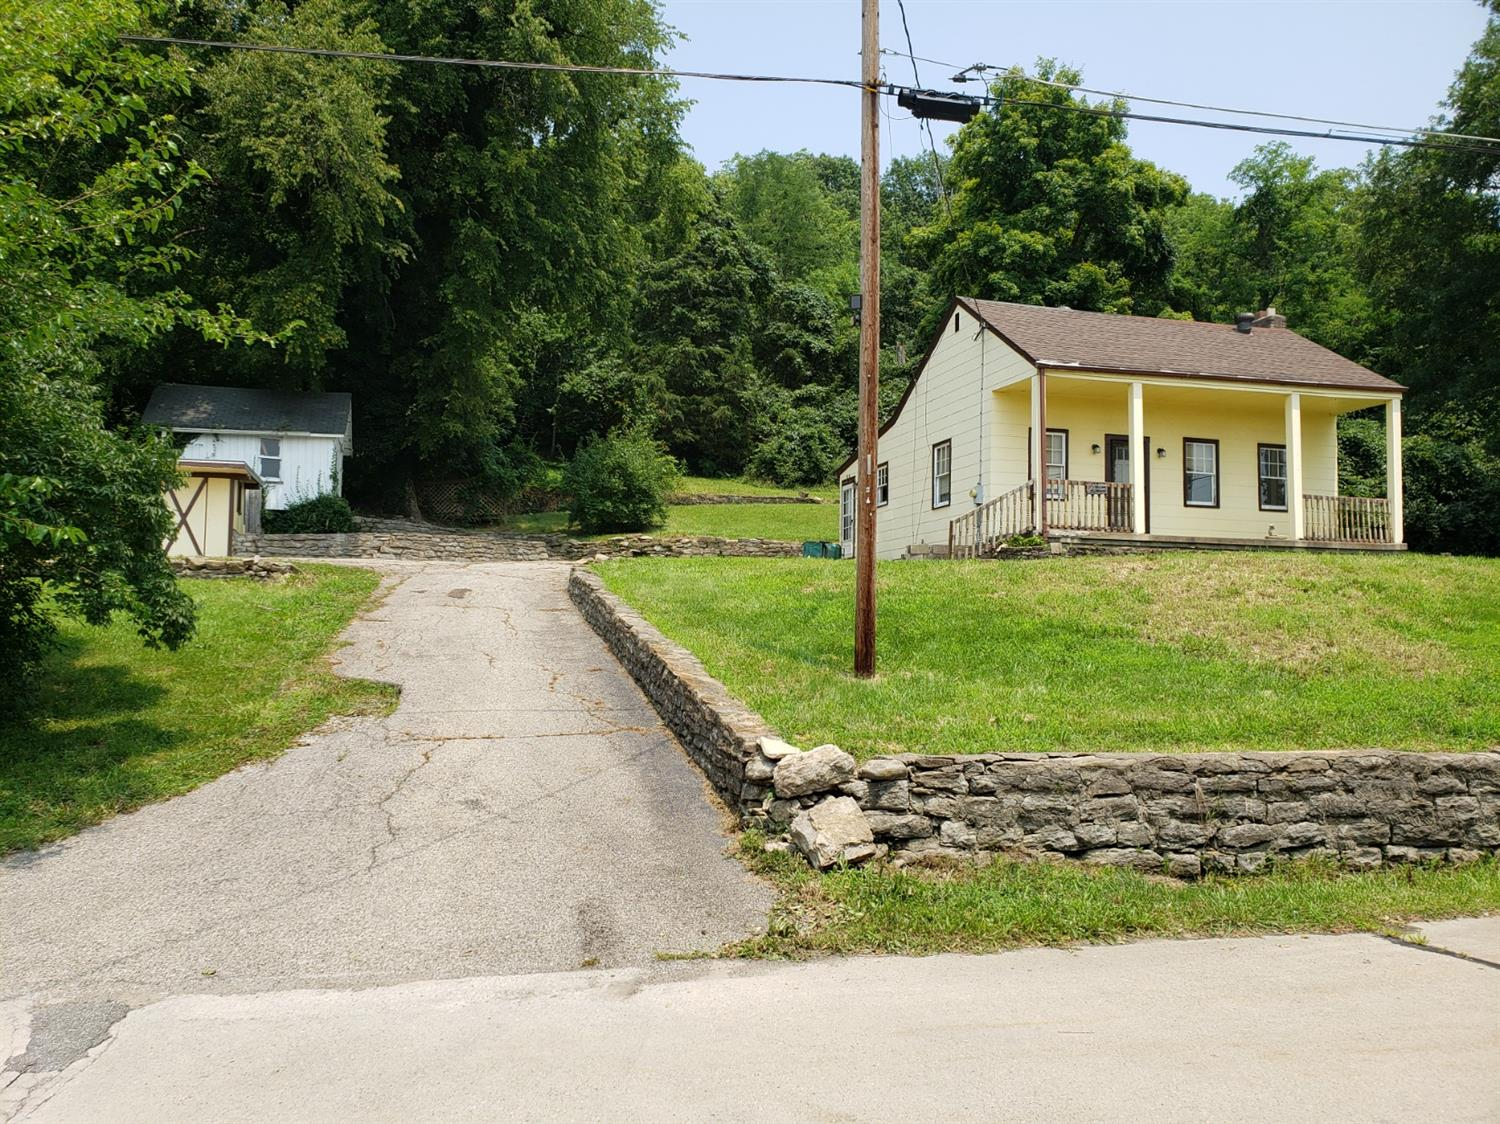 6920 Old Kellogg Road, Anderson Twp, Ohio 45255, 2 Bedrooms Bedrooms, 4 Rooms Rooms,1 BathroomBathrooms,Single Family Residence,For Sale,Old Kellogg,1708668